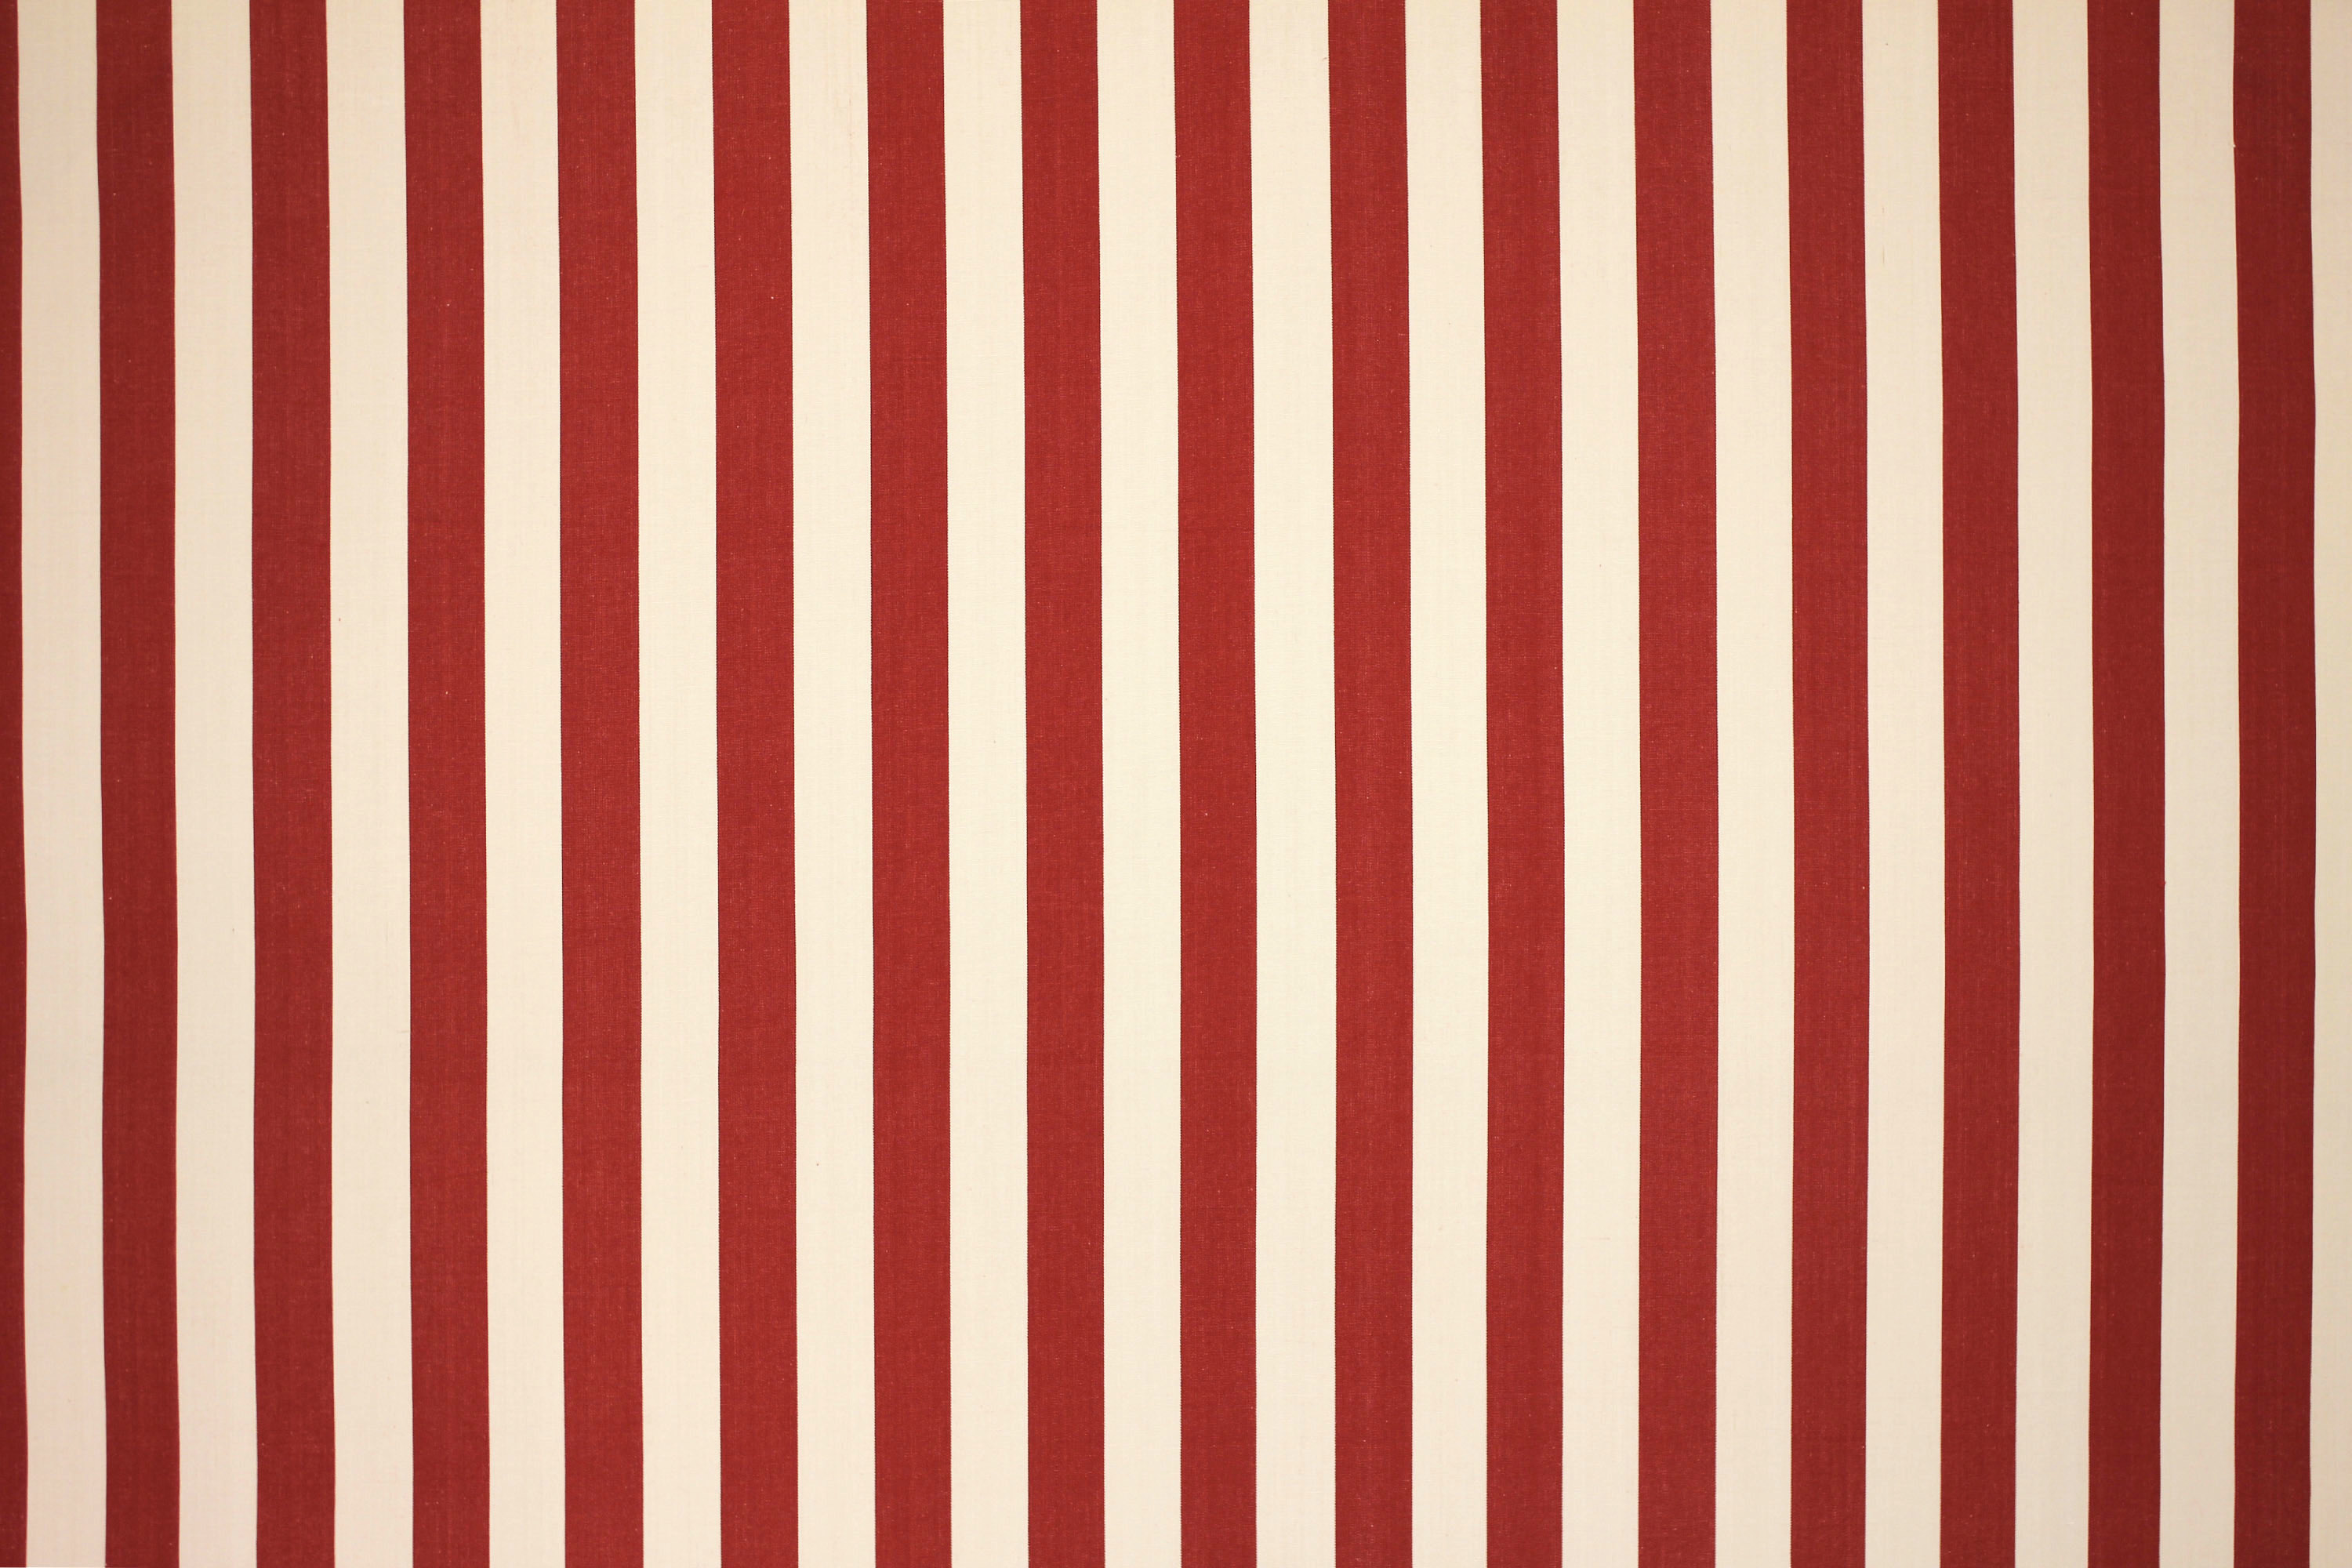 Striped Fabrics Stripe Cotton Fabrics Striped Curtain